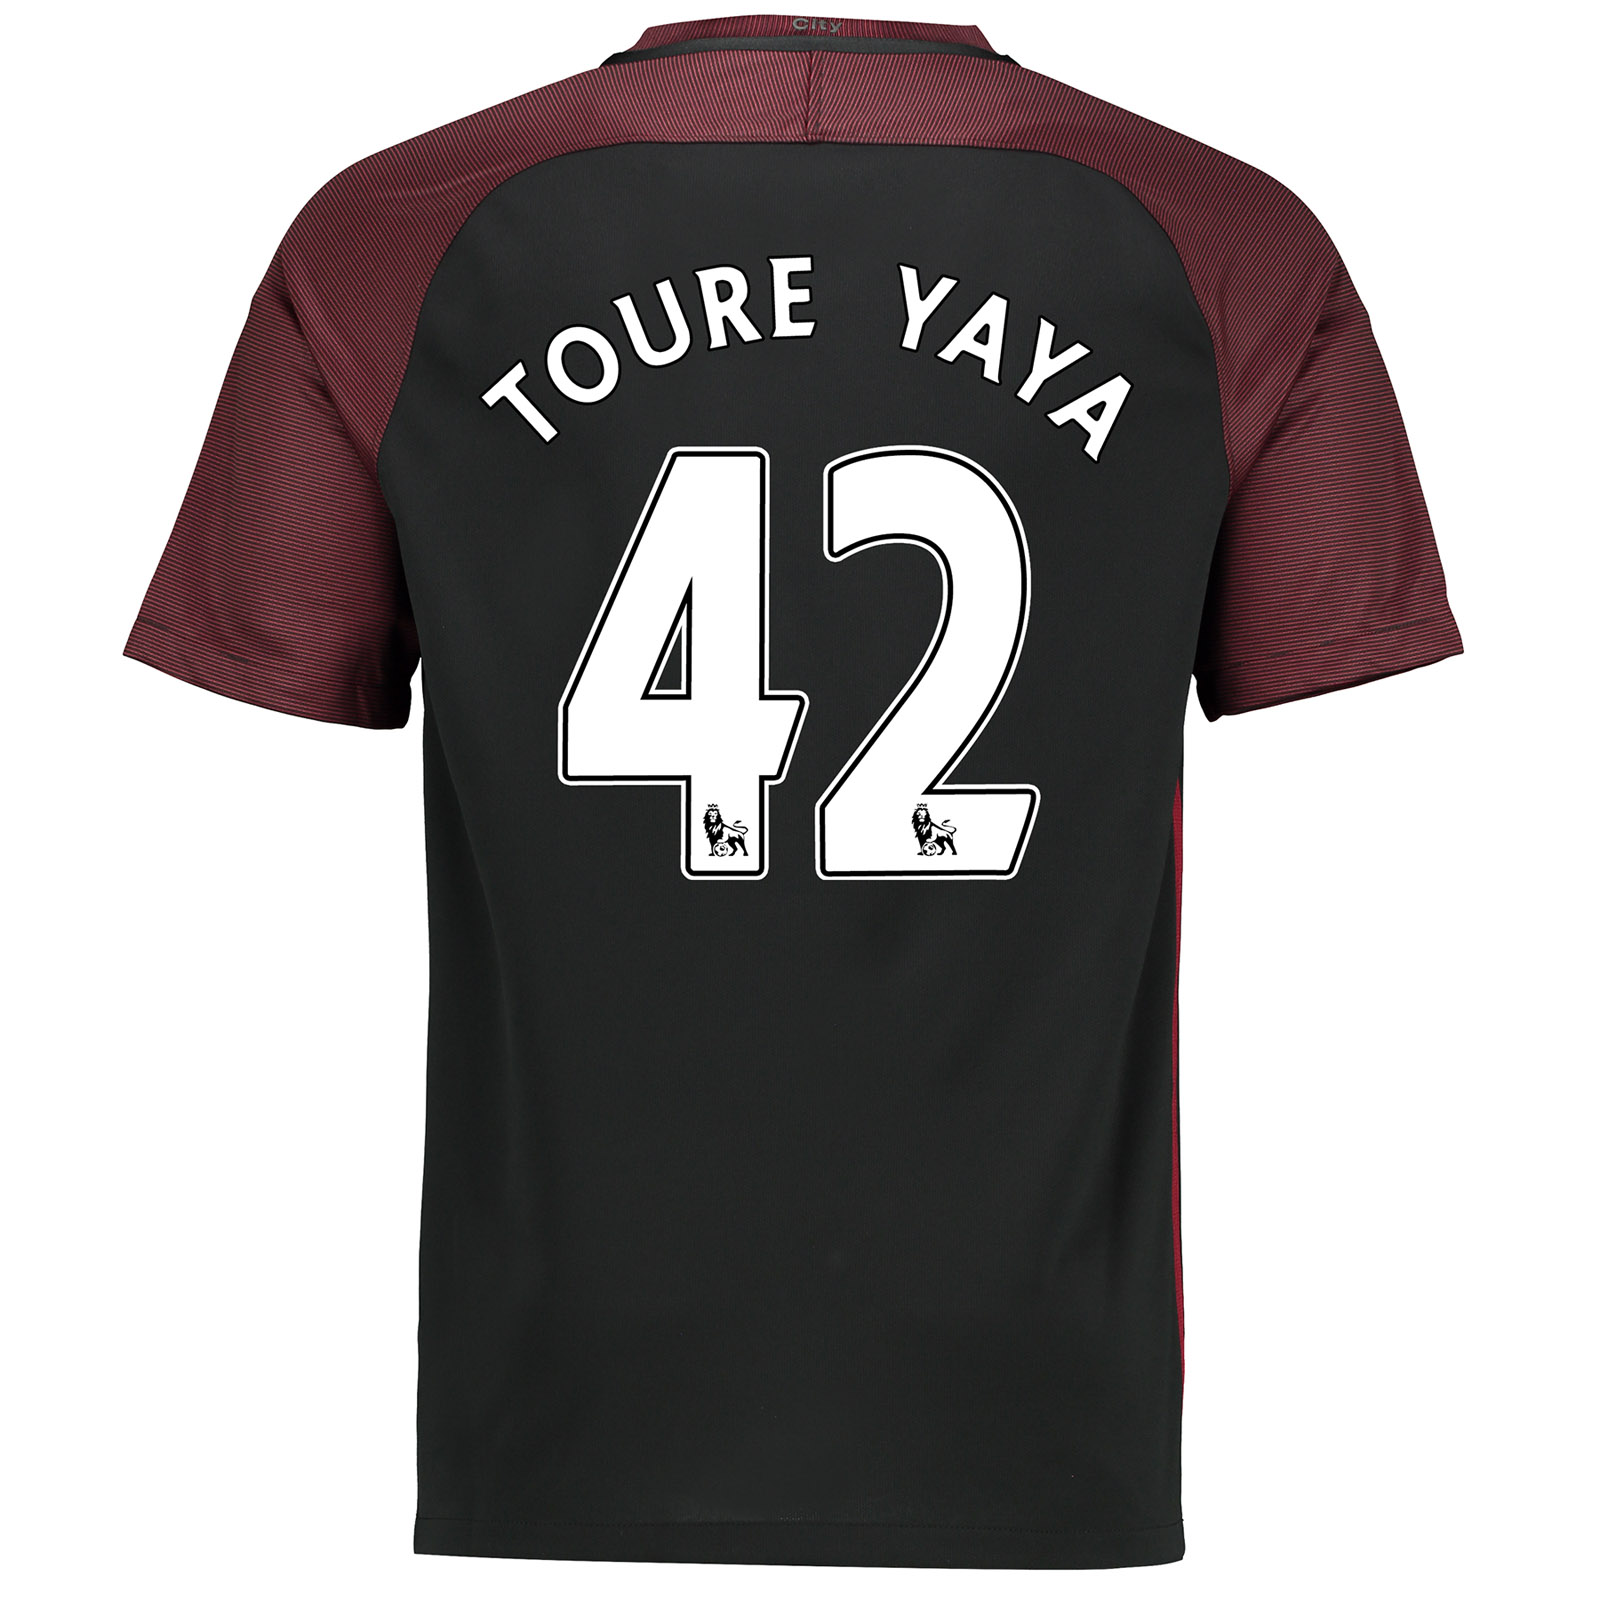 Manchester City Away Stadium Shirt 2016-17 with Toure Yaya 42 printing